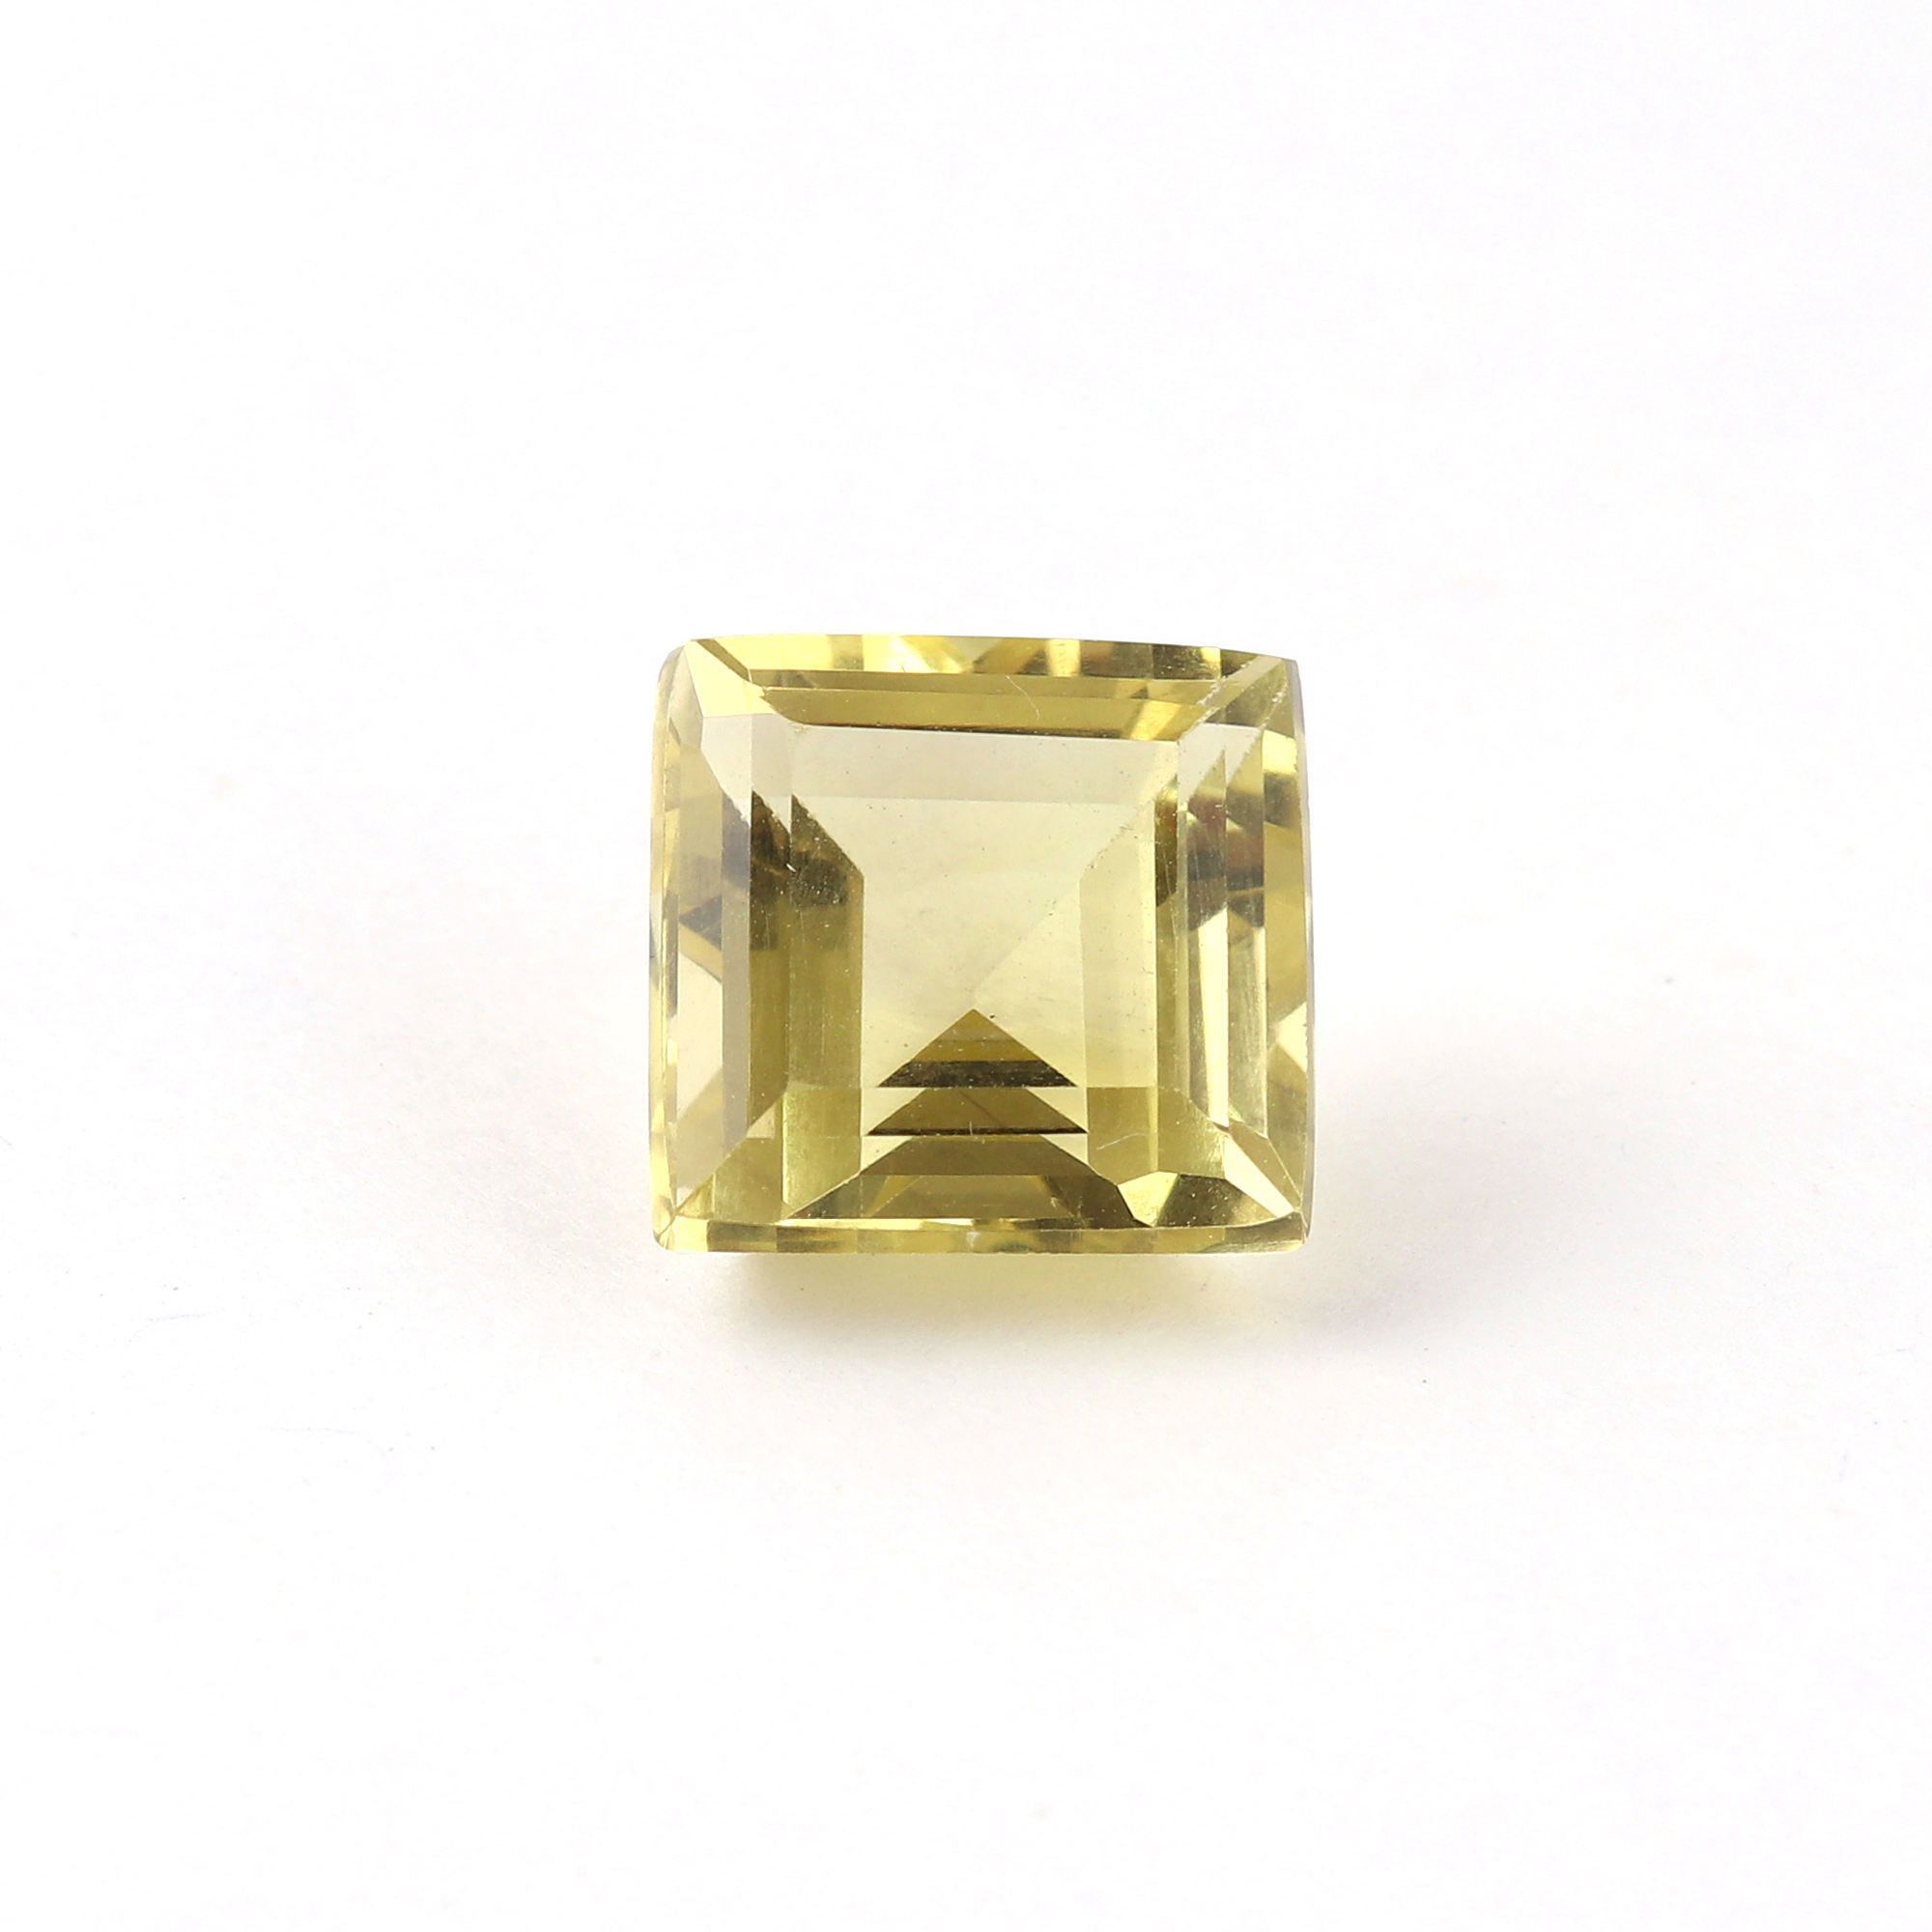 6. Cts. Natural lemon Faceted square Shape Loose Gemstone, Top Quality lemon Loose Gemstone, For Making Jewelry, 10 MM